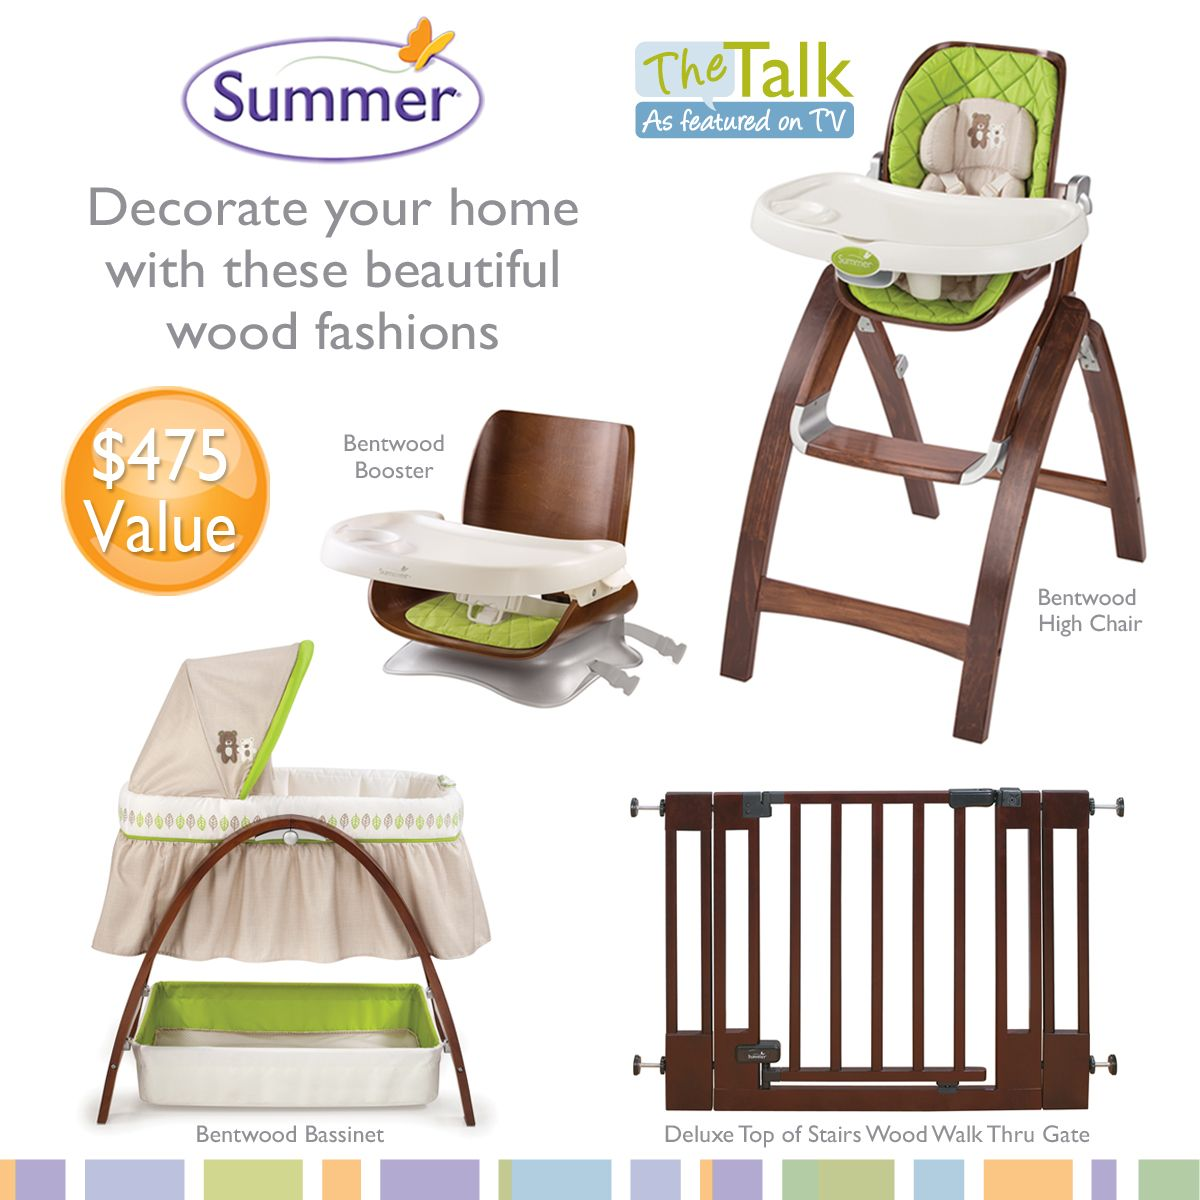 Enter to win a Summer Infant Bentwood Prize Pack ($8 Value